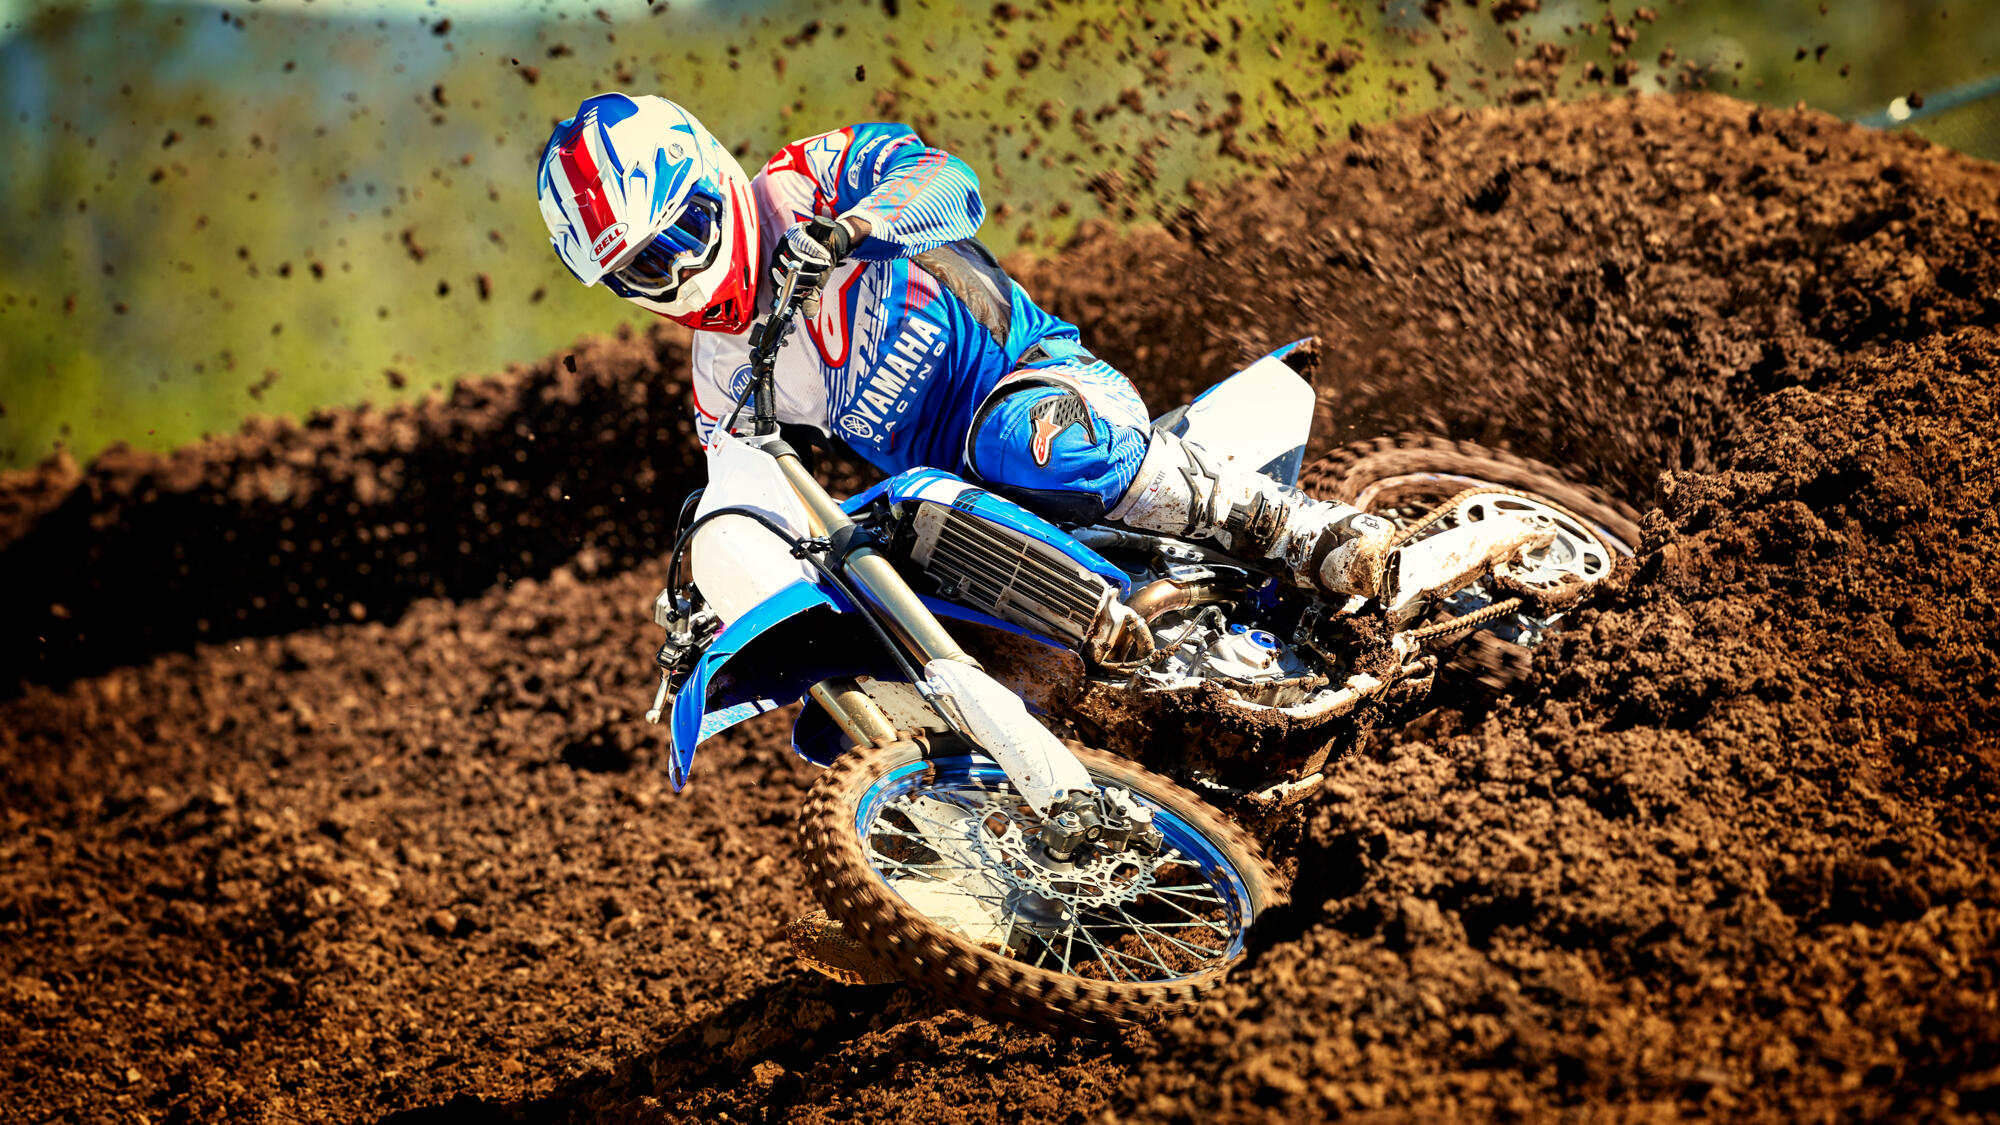 Yz450f off road motorcycles yme website fandeluxe Image collections